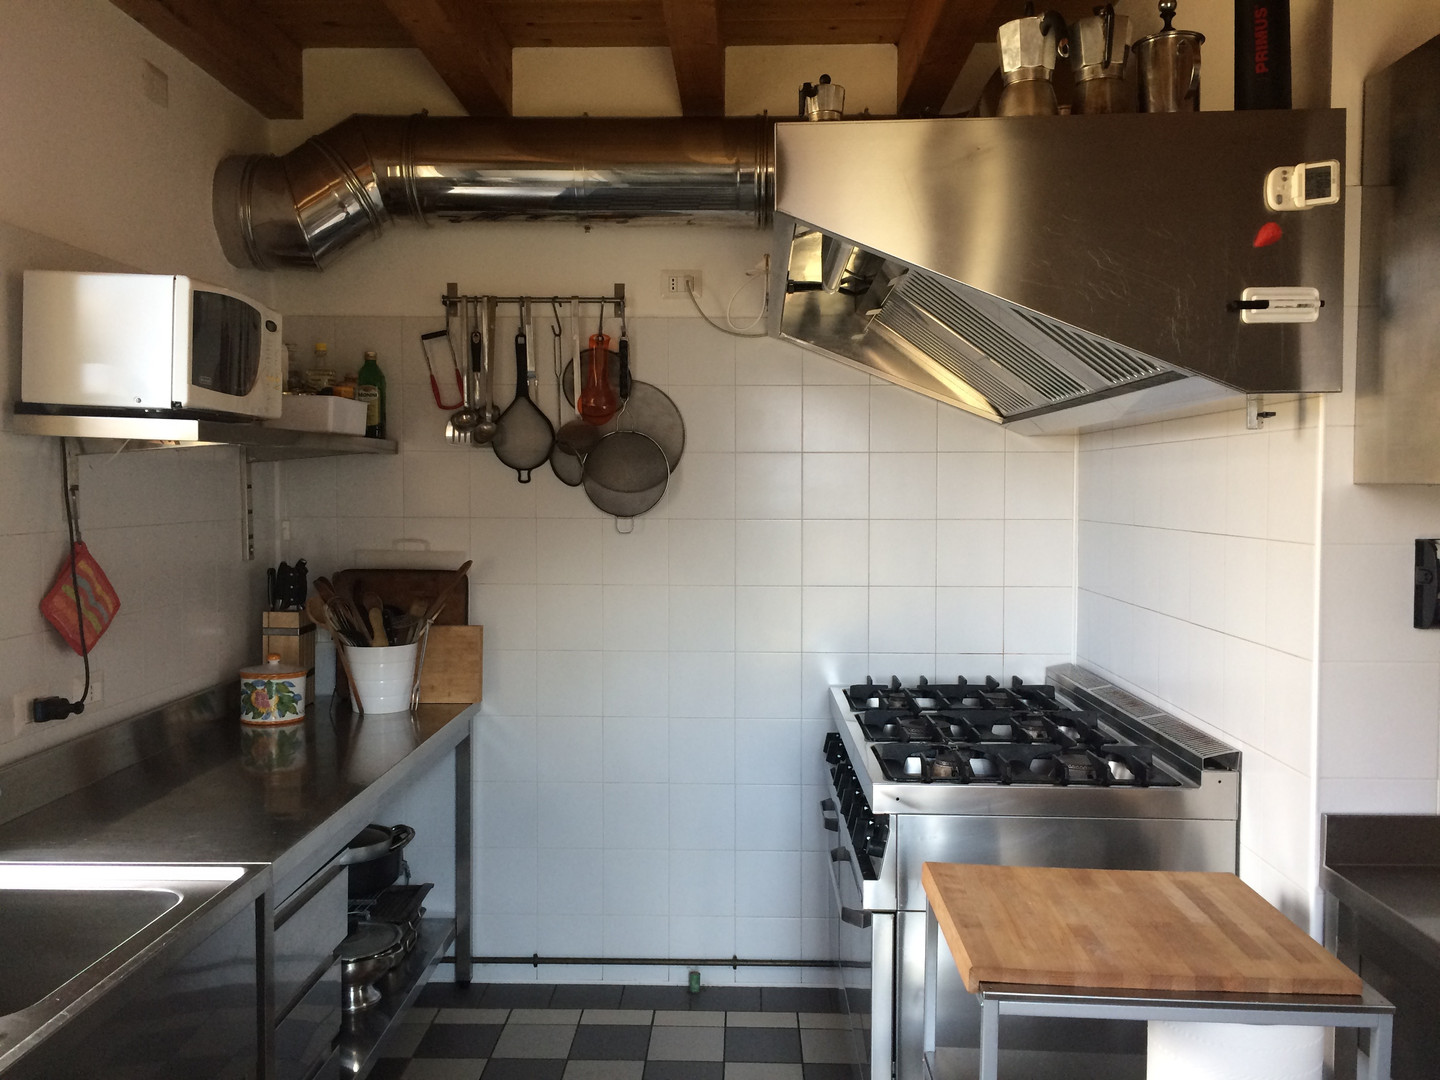 The kitchen equipment is professional since in the past the building was an eatery